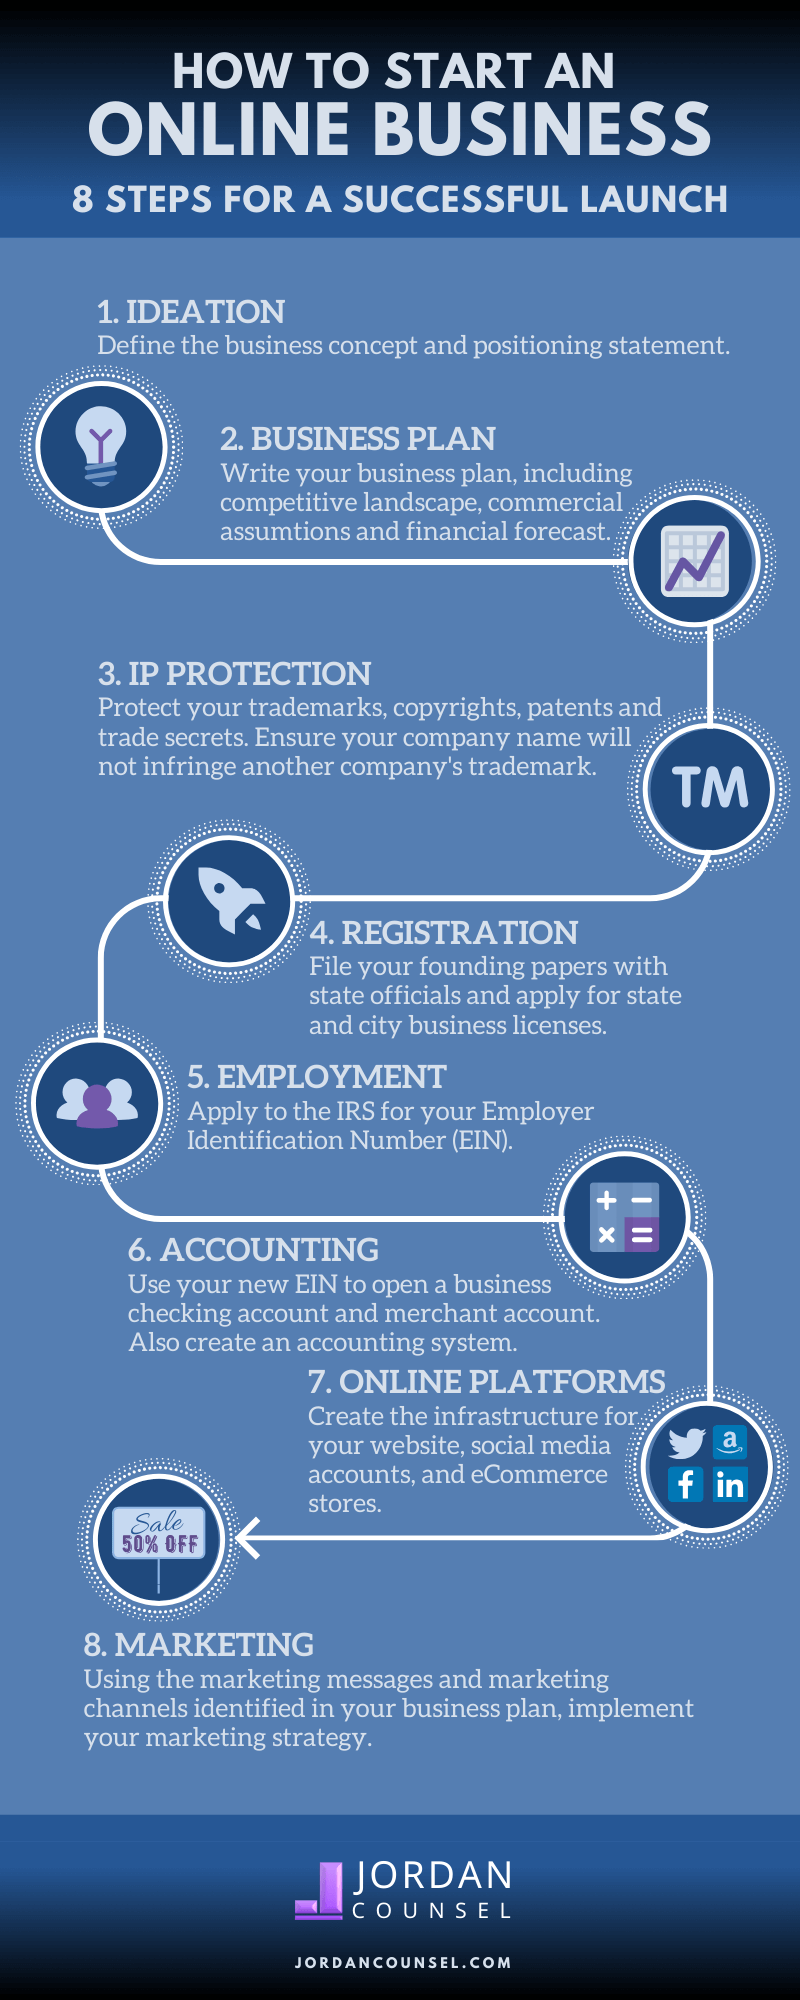 Infographic explaining the steps needed to start an online business